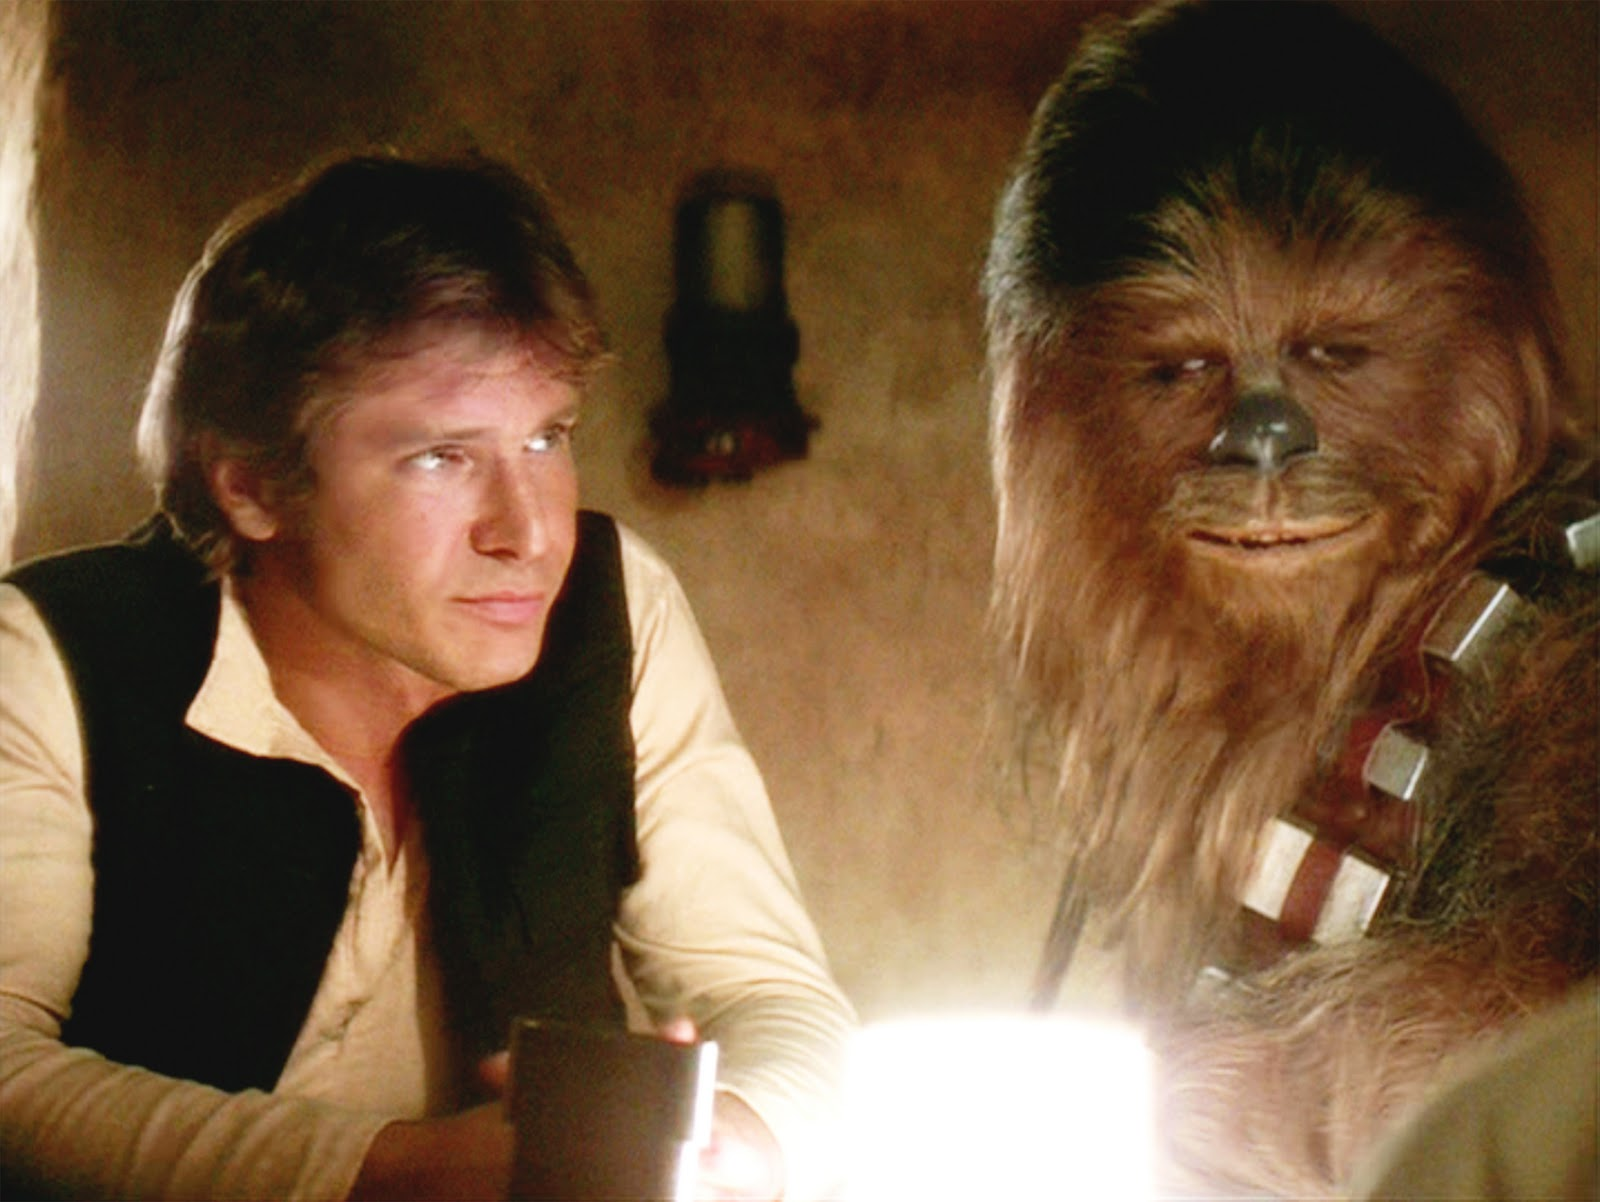 han and chewie relationship goals pictures